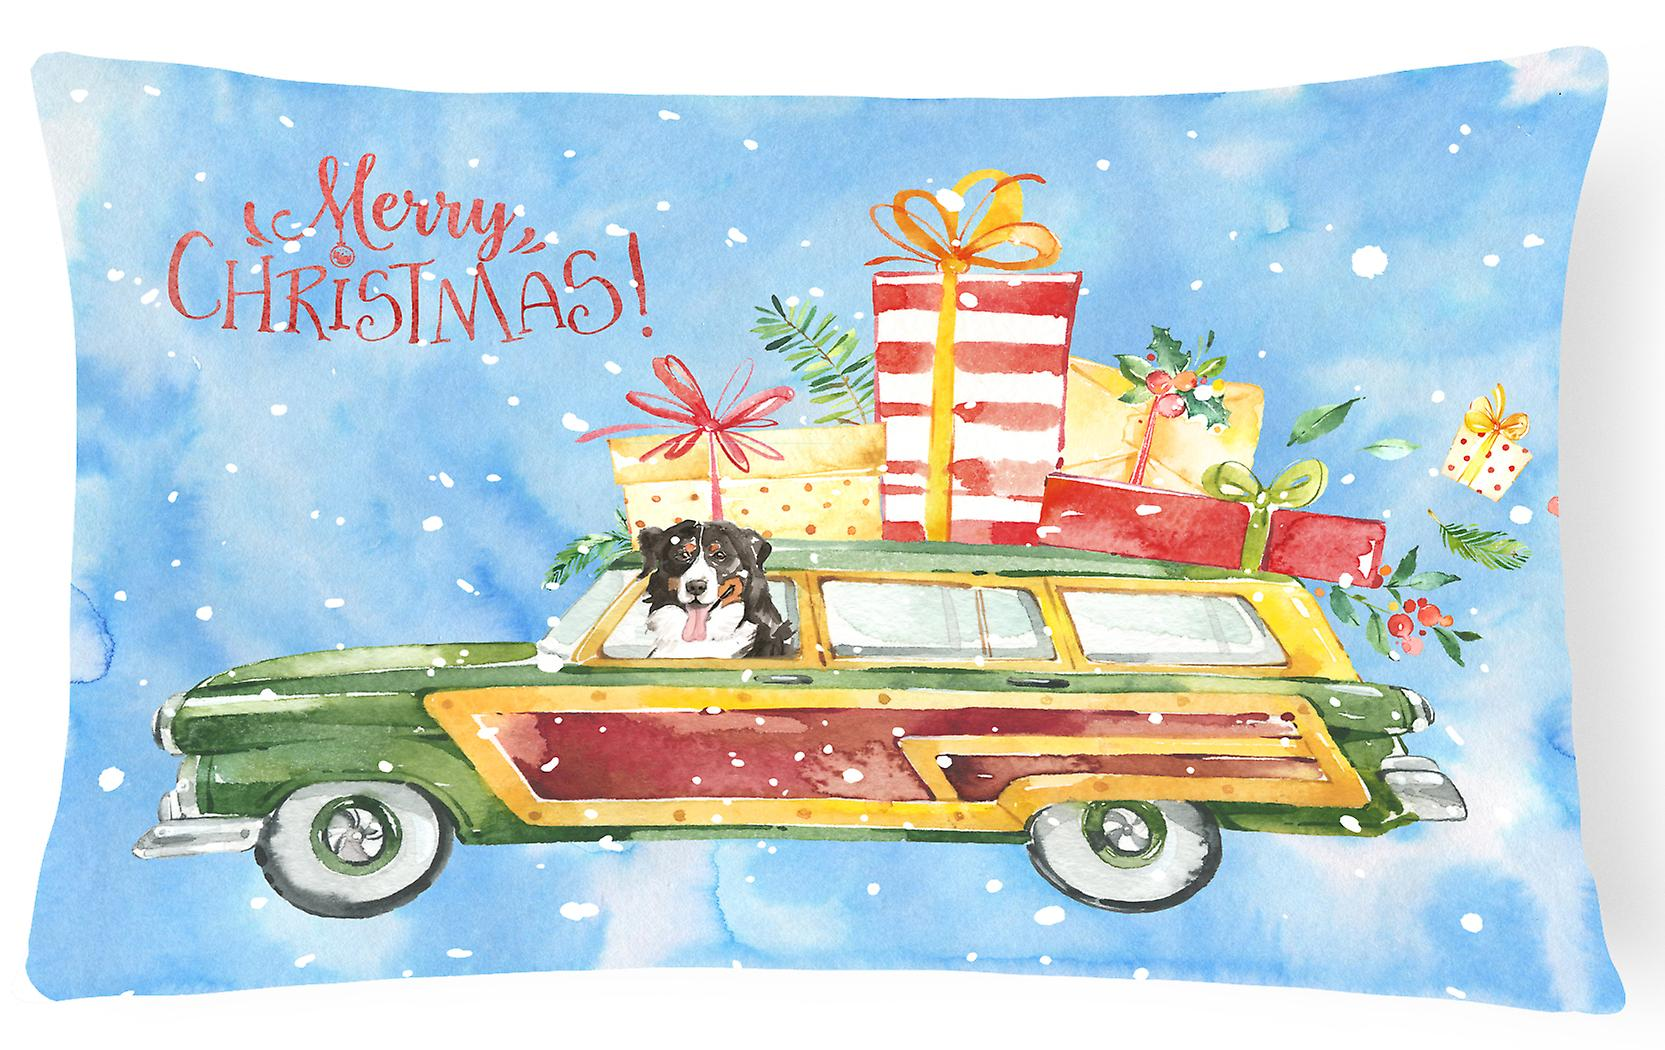 Mountain Dog Decorative Pillow Canvas Christmas Fabric Bernese Merry DHE2IY9W